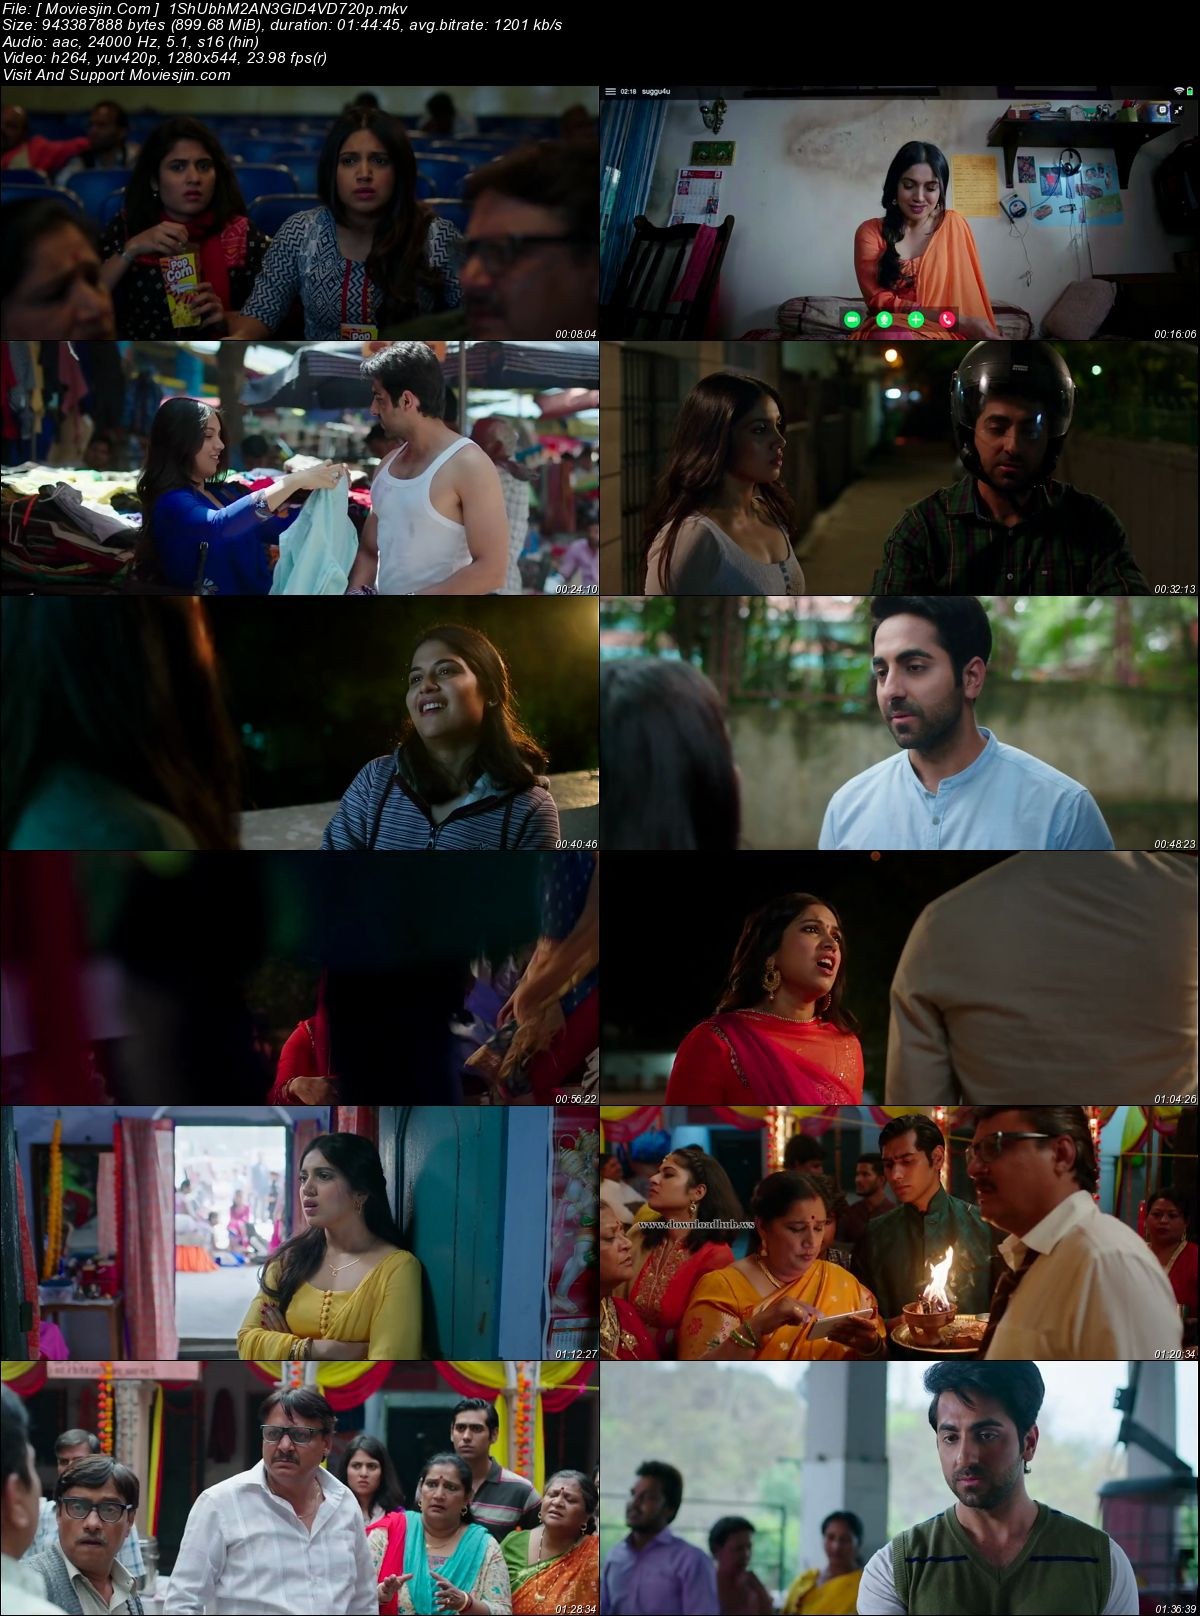 Watch Online Shubh Mangal Saavdhan 2017 Full Hindi Movie 720p ESub 899MB Full Movie Download mkvcage